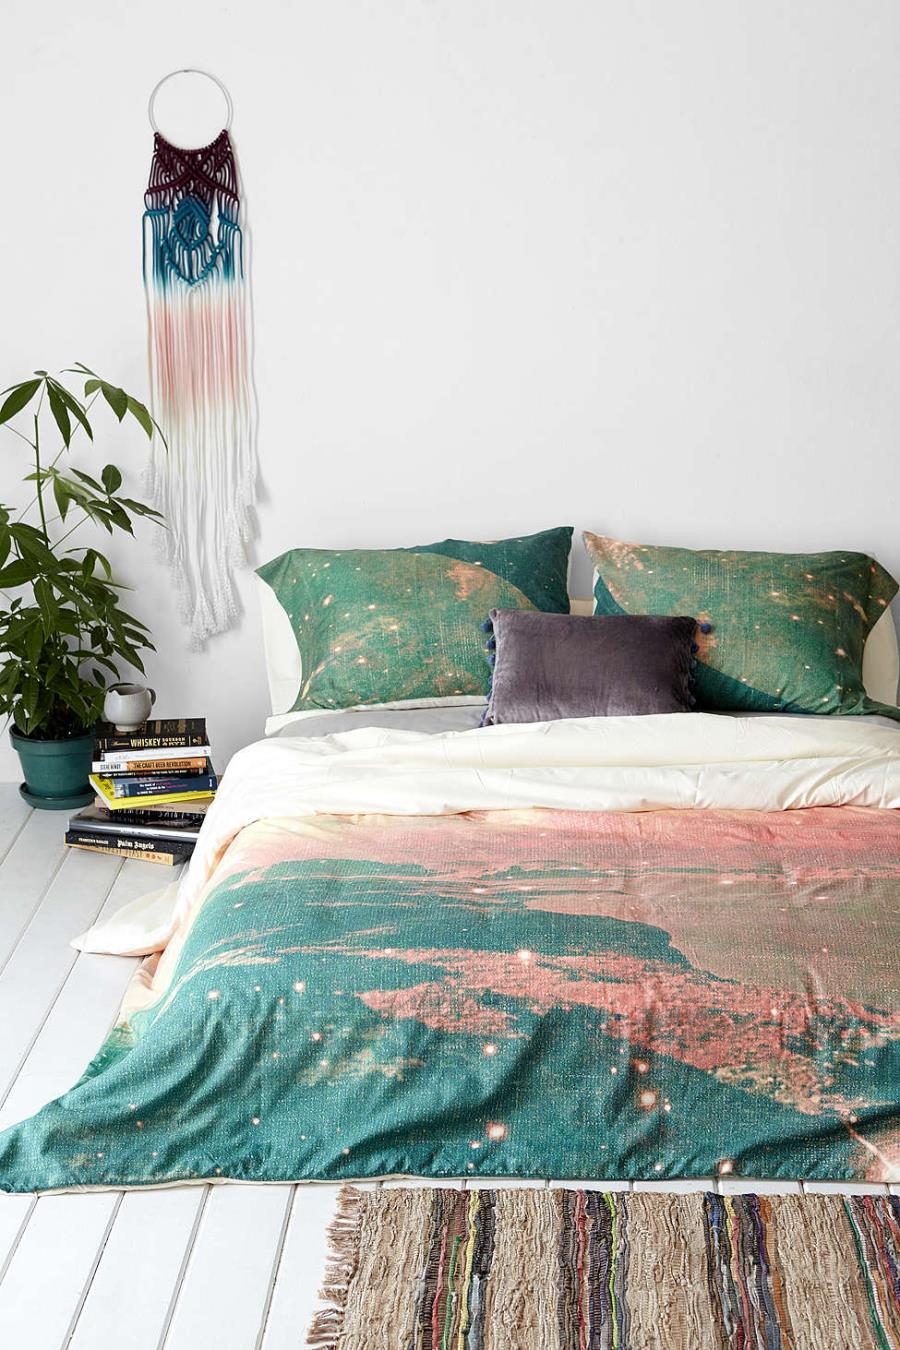 Dreamy bedding from Urban Outfitters